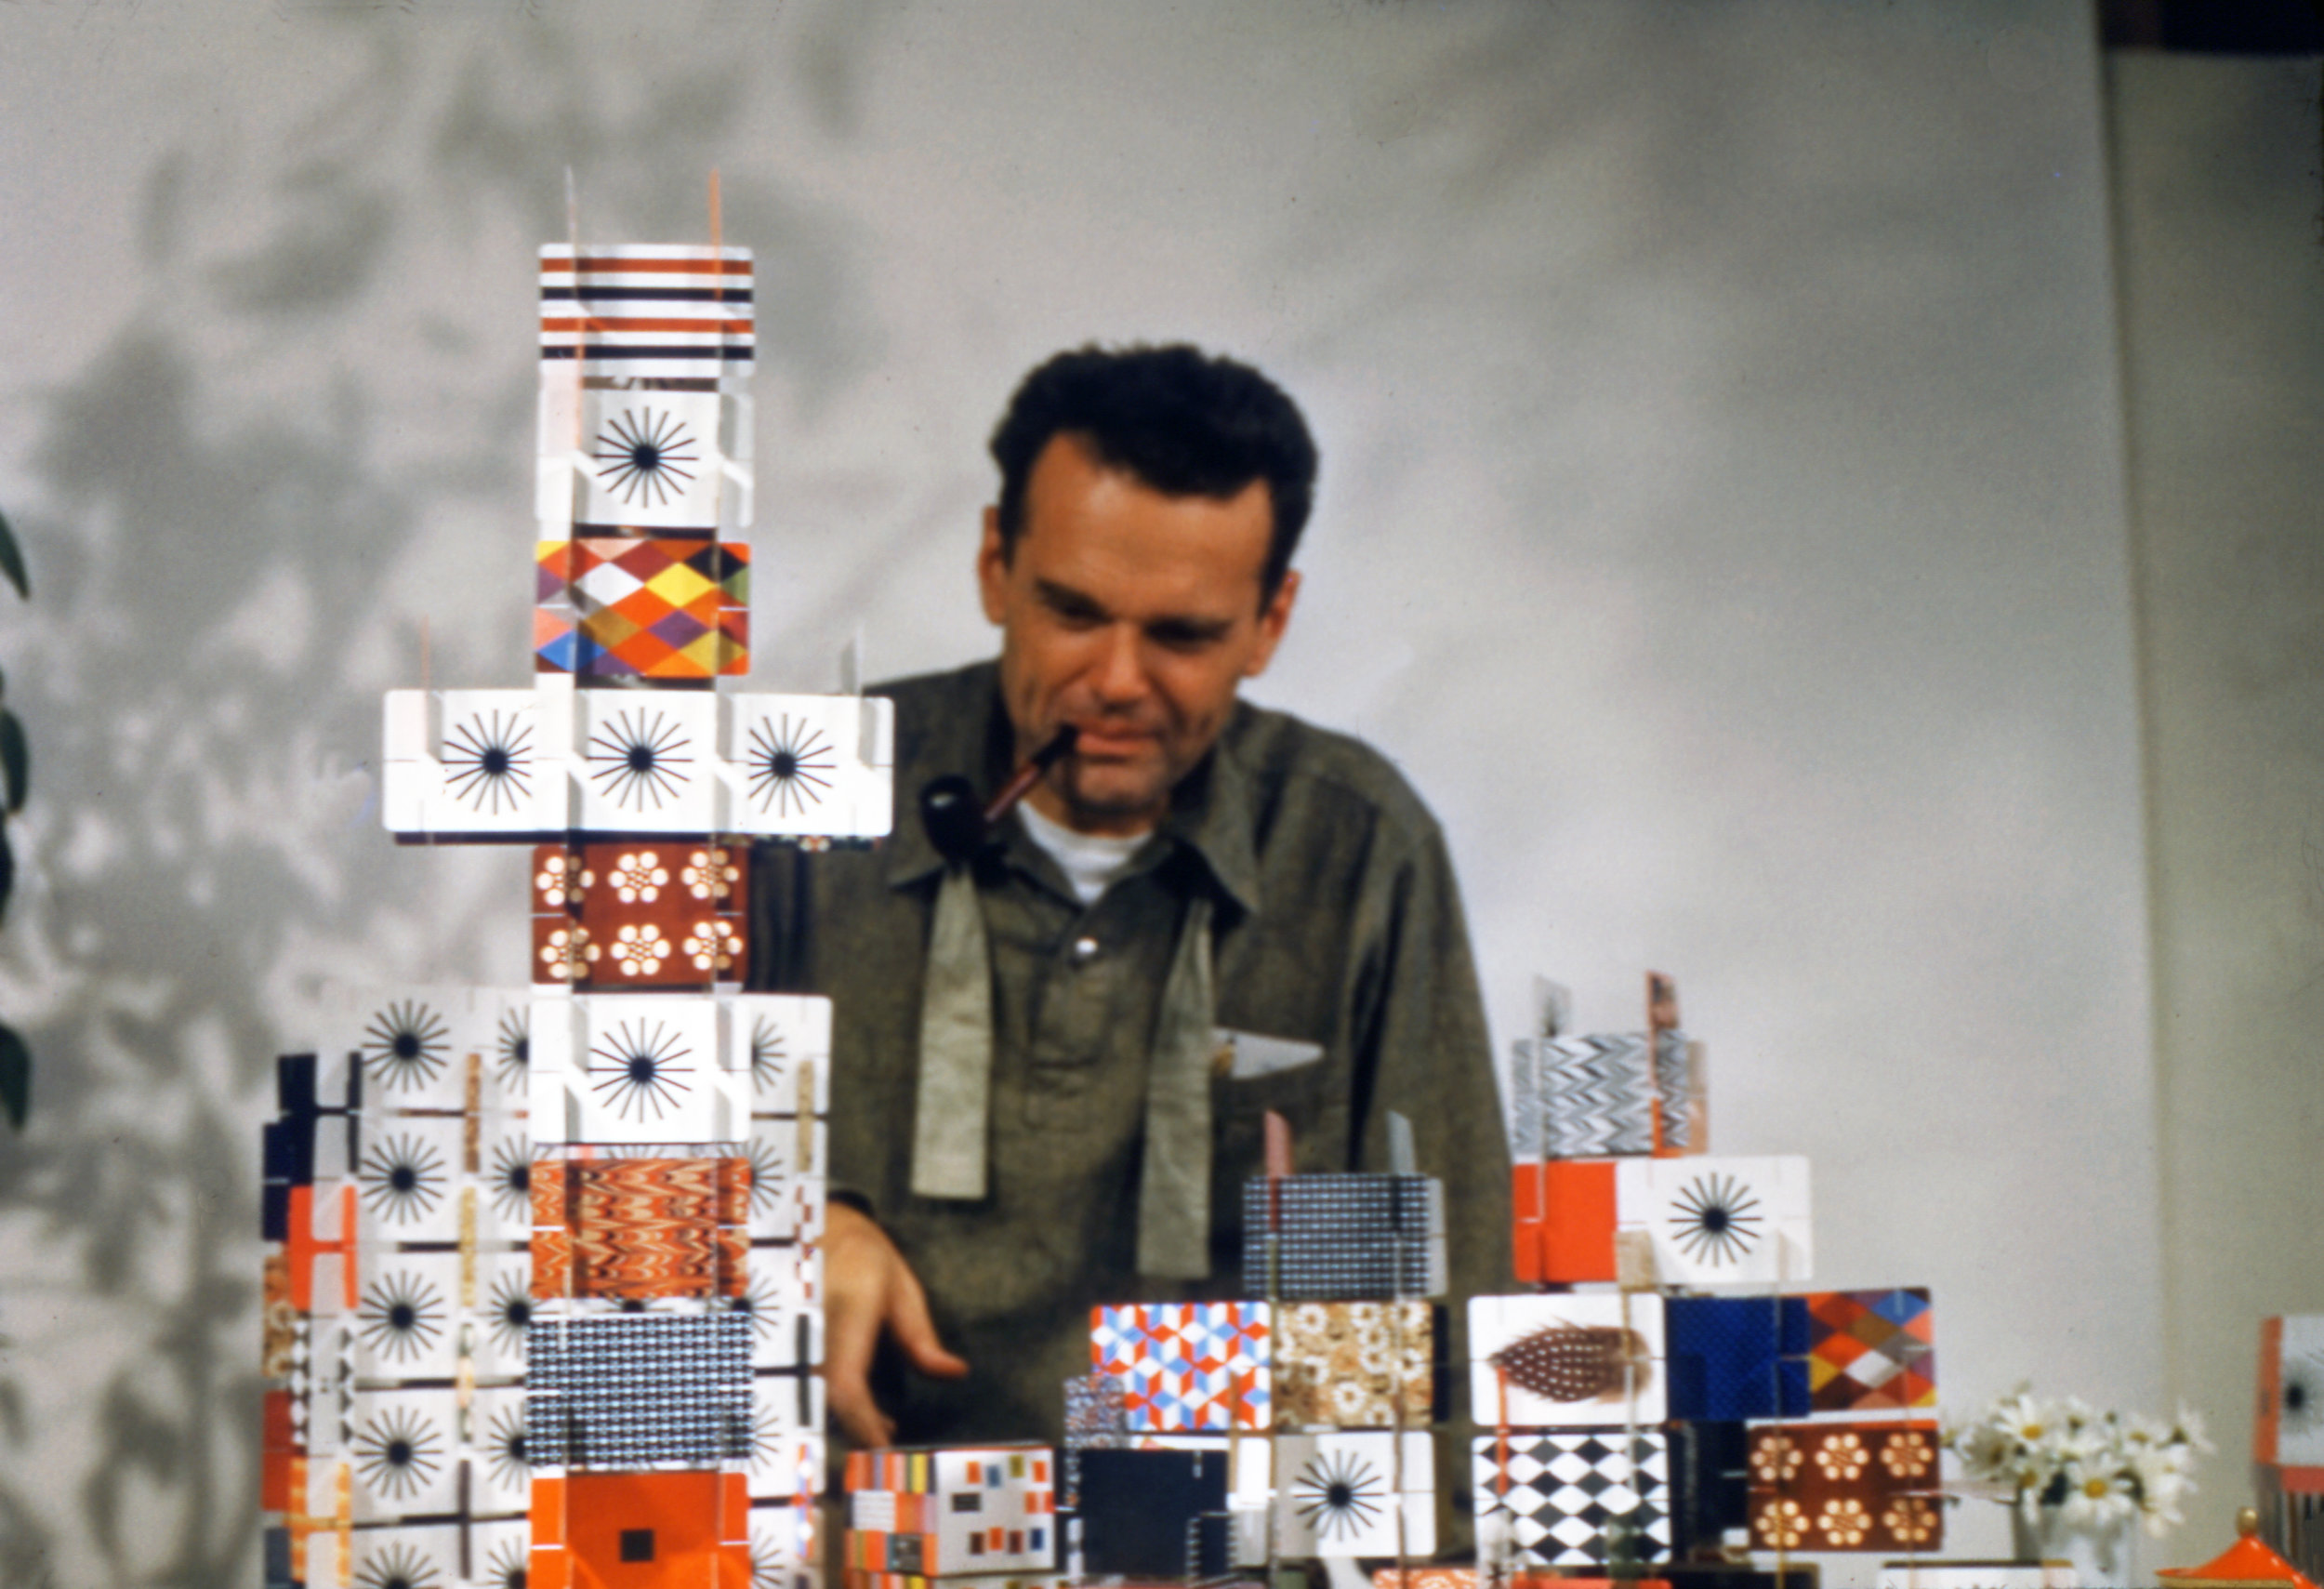 02. An Eames Celebration. Charles Eames playing with the House of Cards_Pattern Deck_1952_∏_2017 Eames Office_LLC.jpg